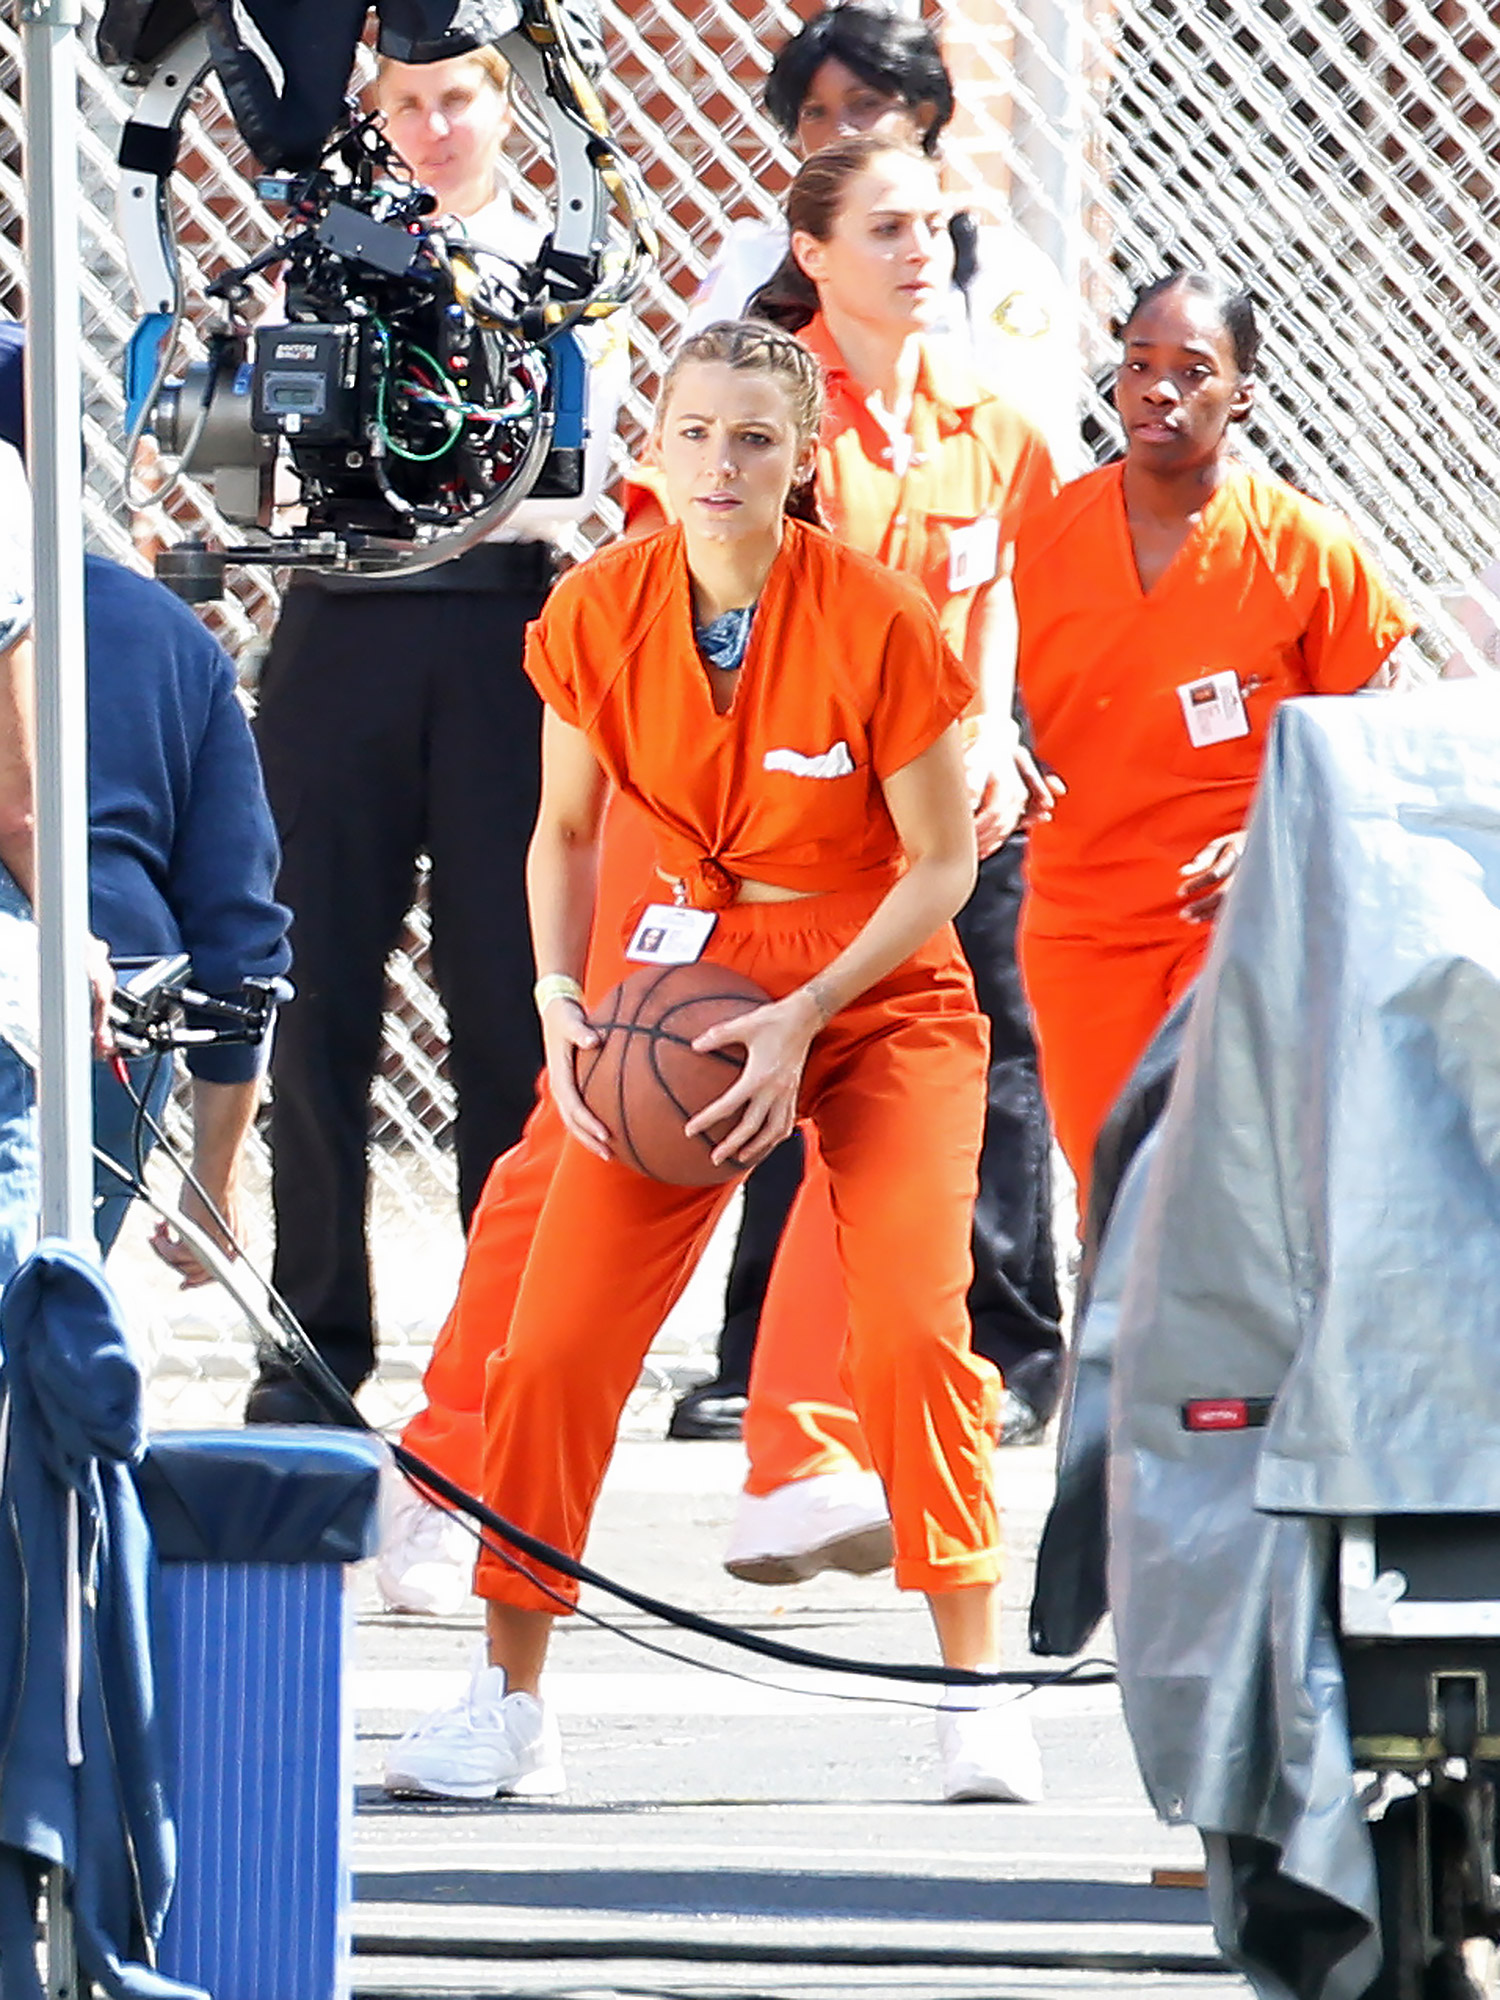 """EXCLUSIVE: Blake Lively Plays Basketball Wearing an Orange Jumpsuit While in a Prison on Set Filming """"A Simple Favor"""" in Toronto"""